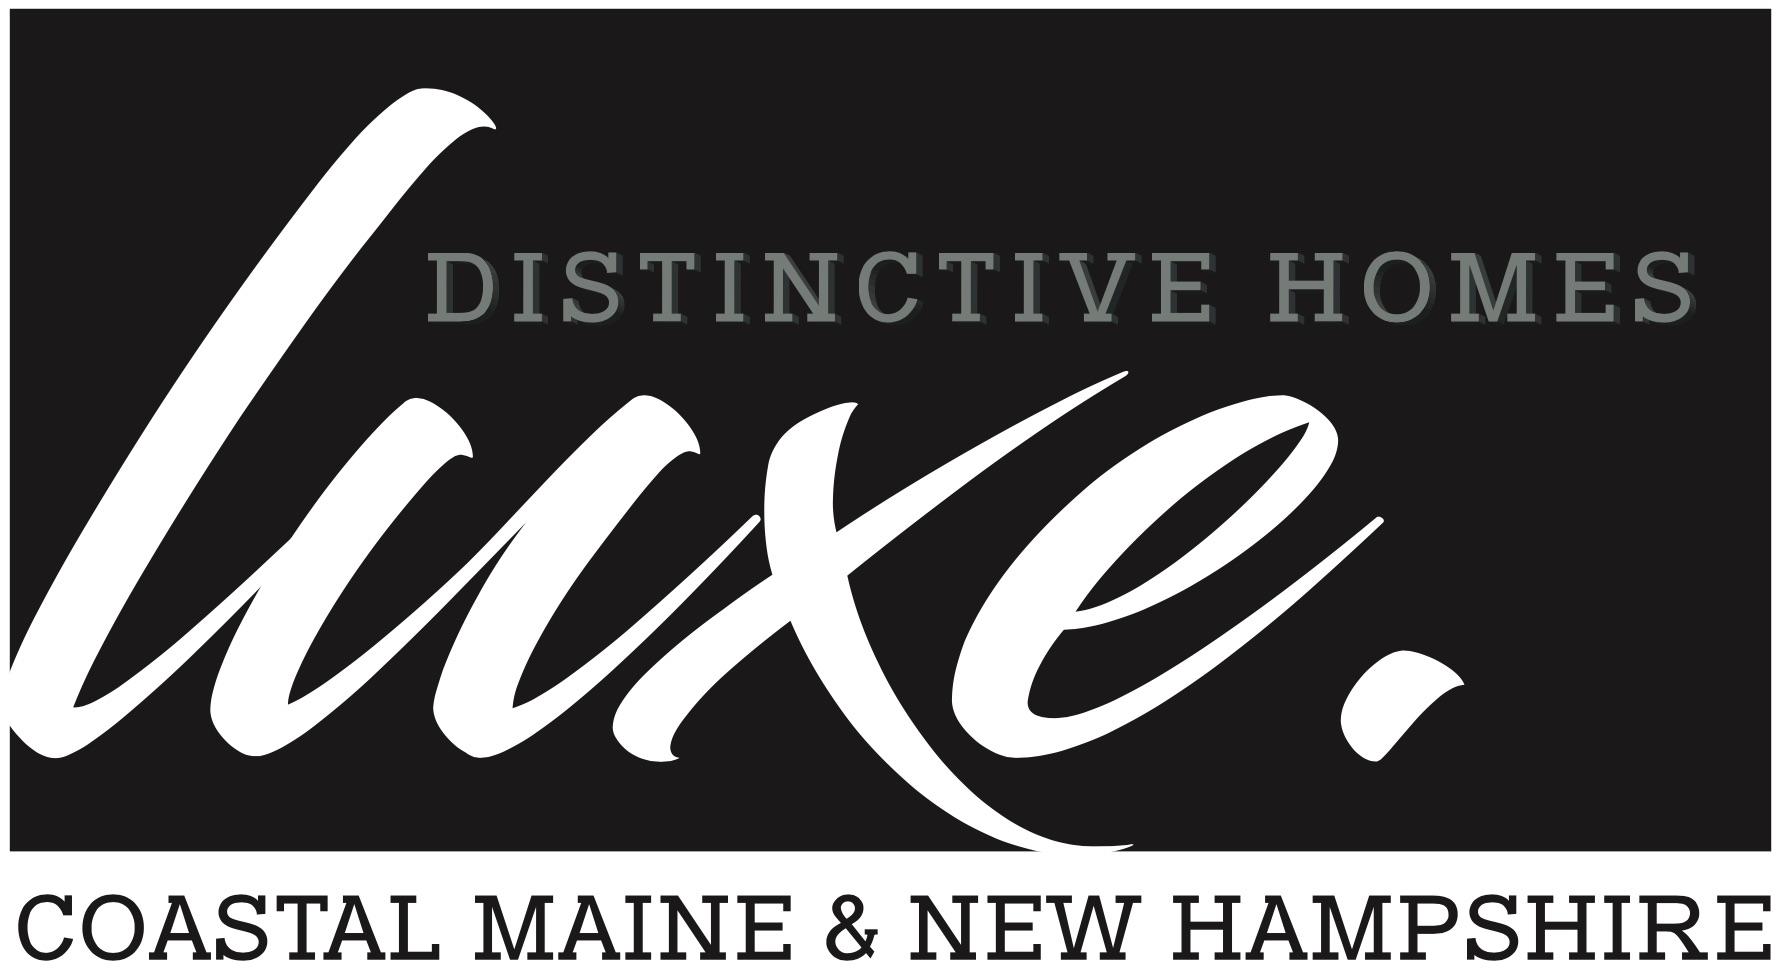 Luxe. Distinctive Homes